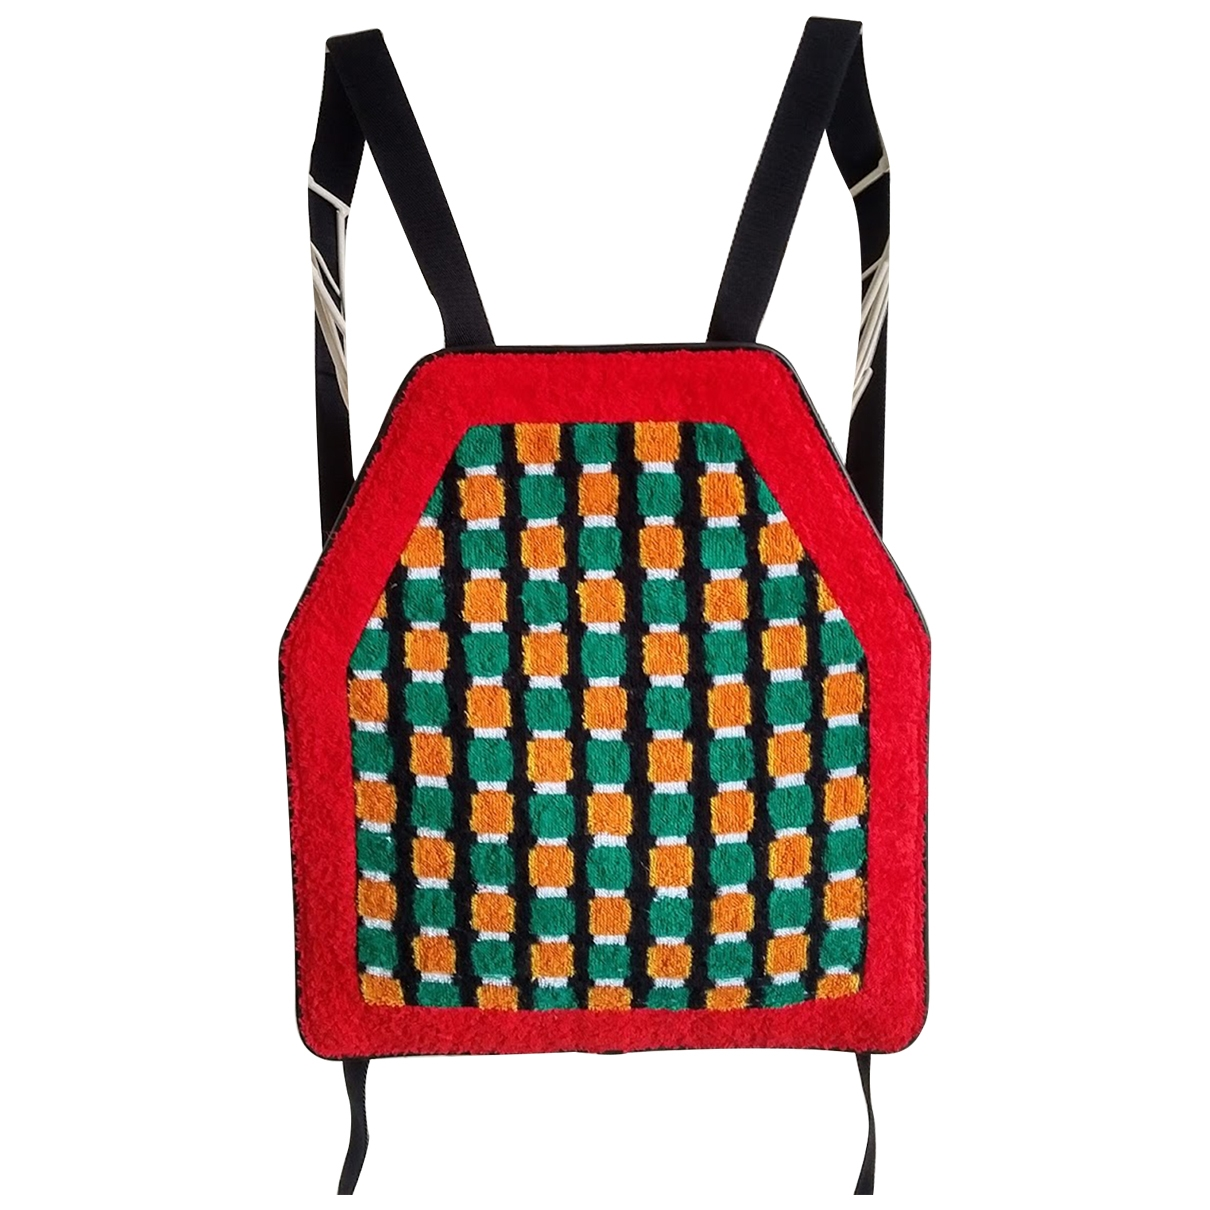 Marni \N Multicolour Leather backpack for Women \N